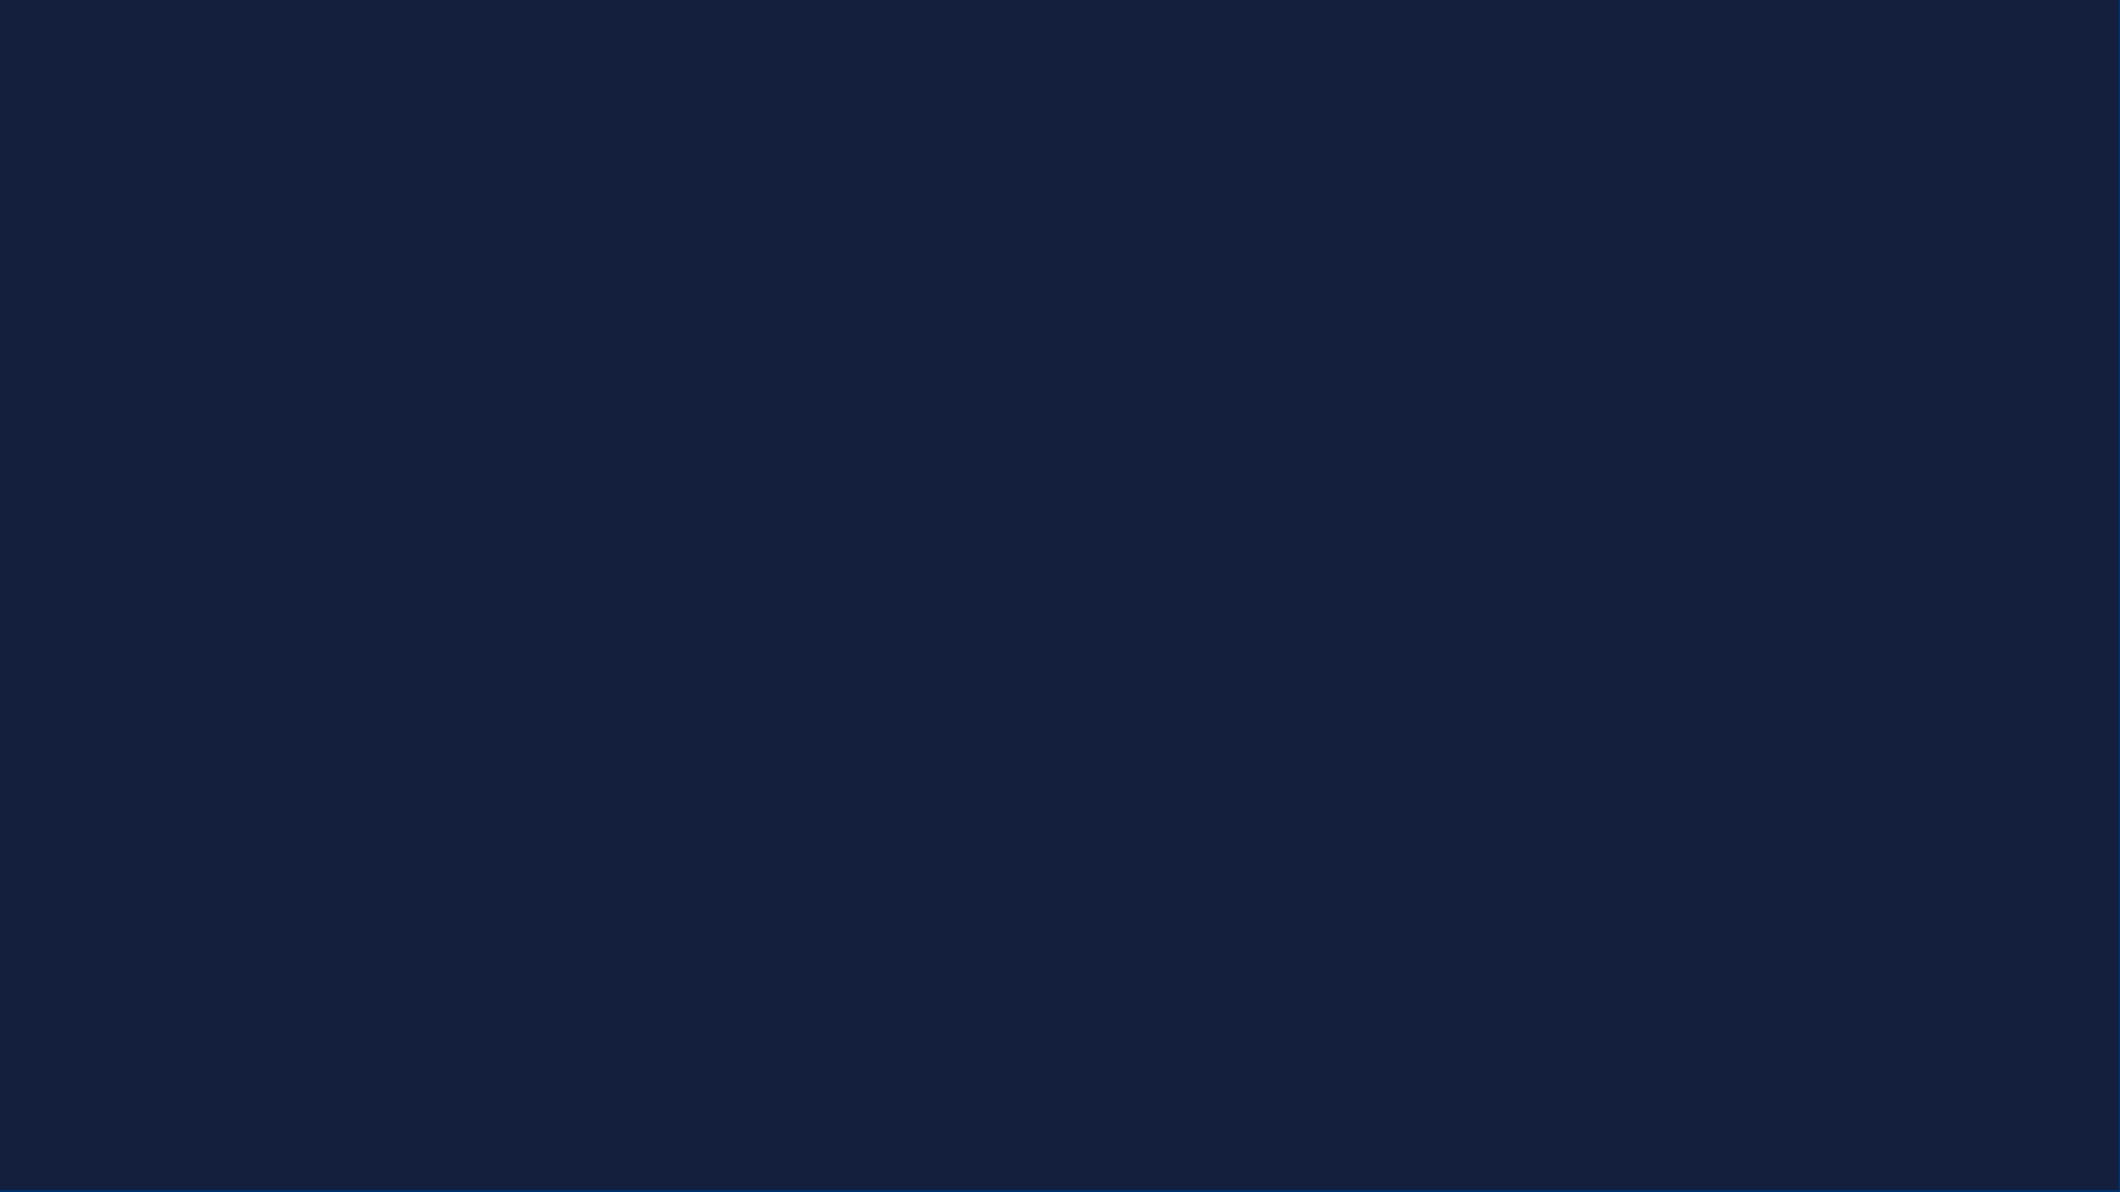 download navy blue backgrounds which is under the blue wallpapers 2120x1192